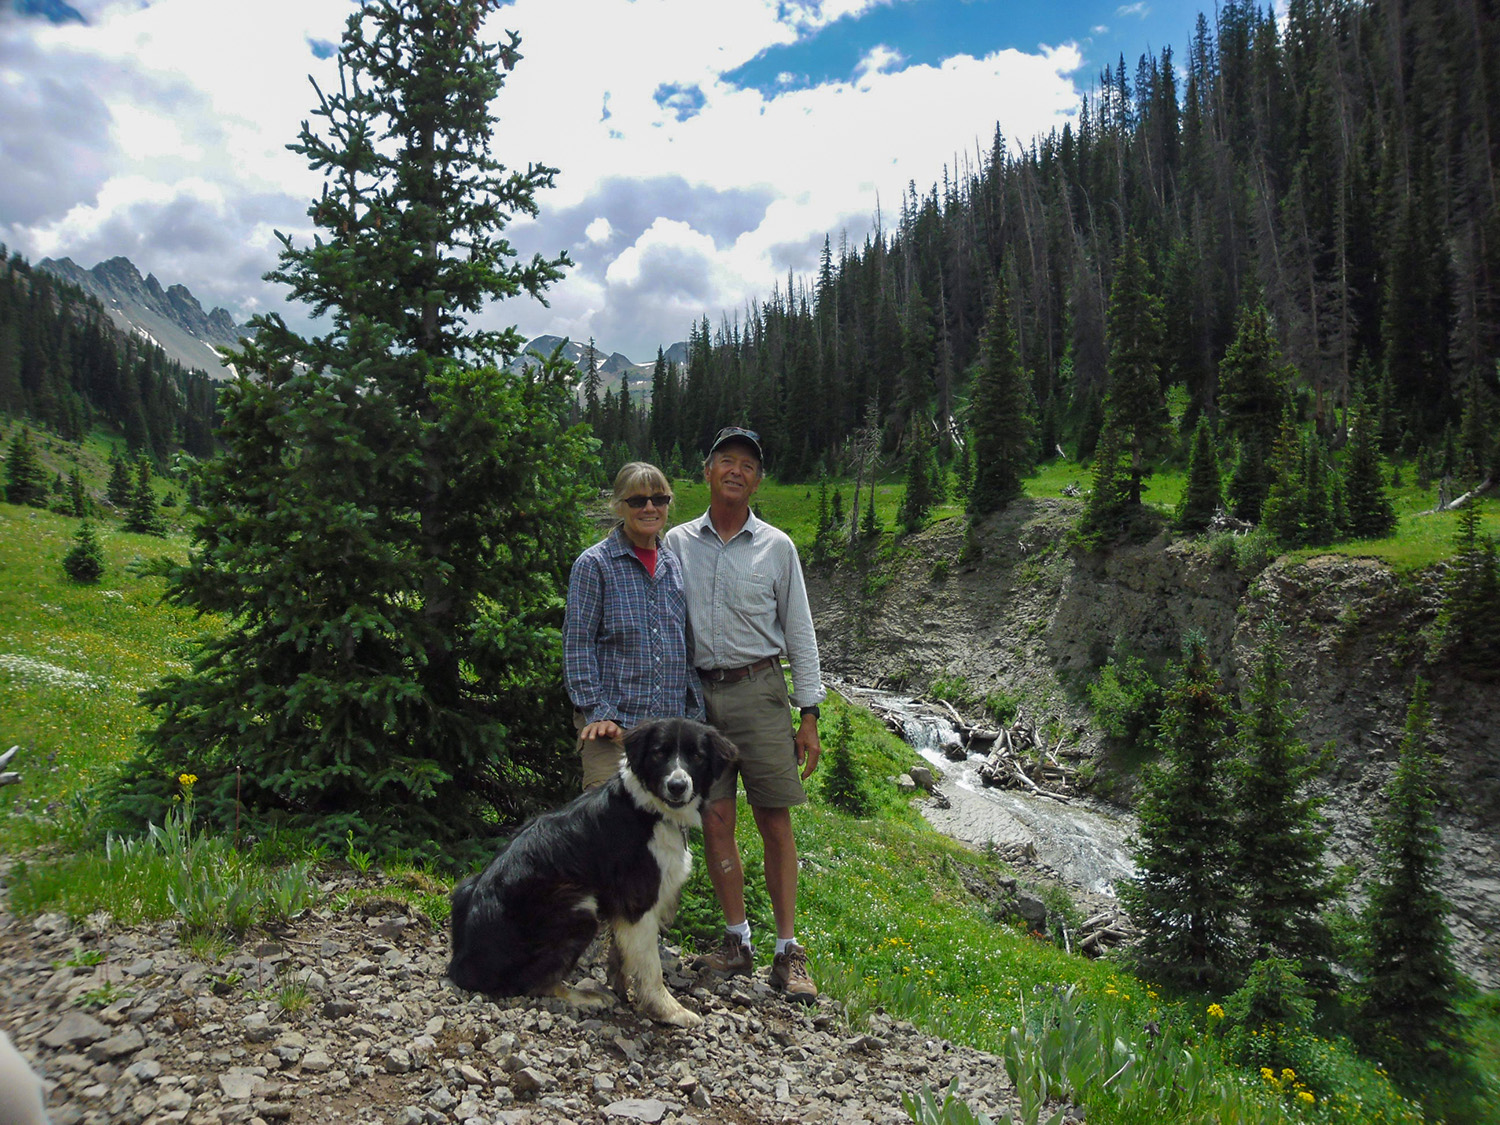 Ed & Lyn Keese in the mountains of Colorado with their dog near a stream